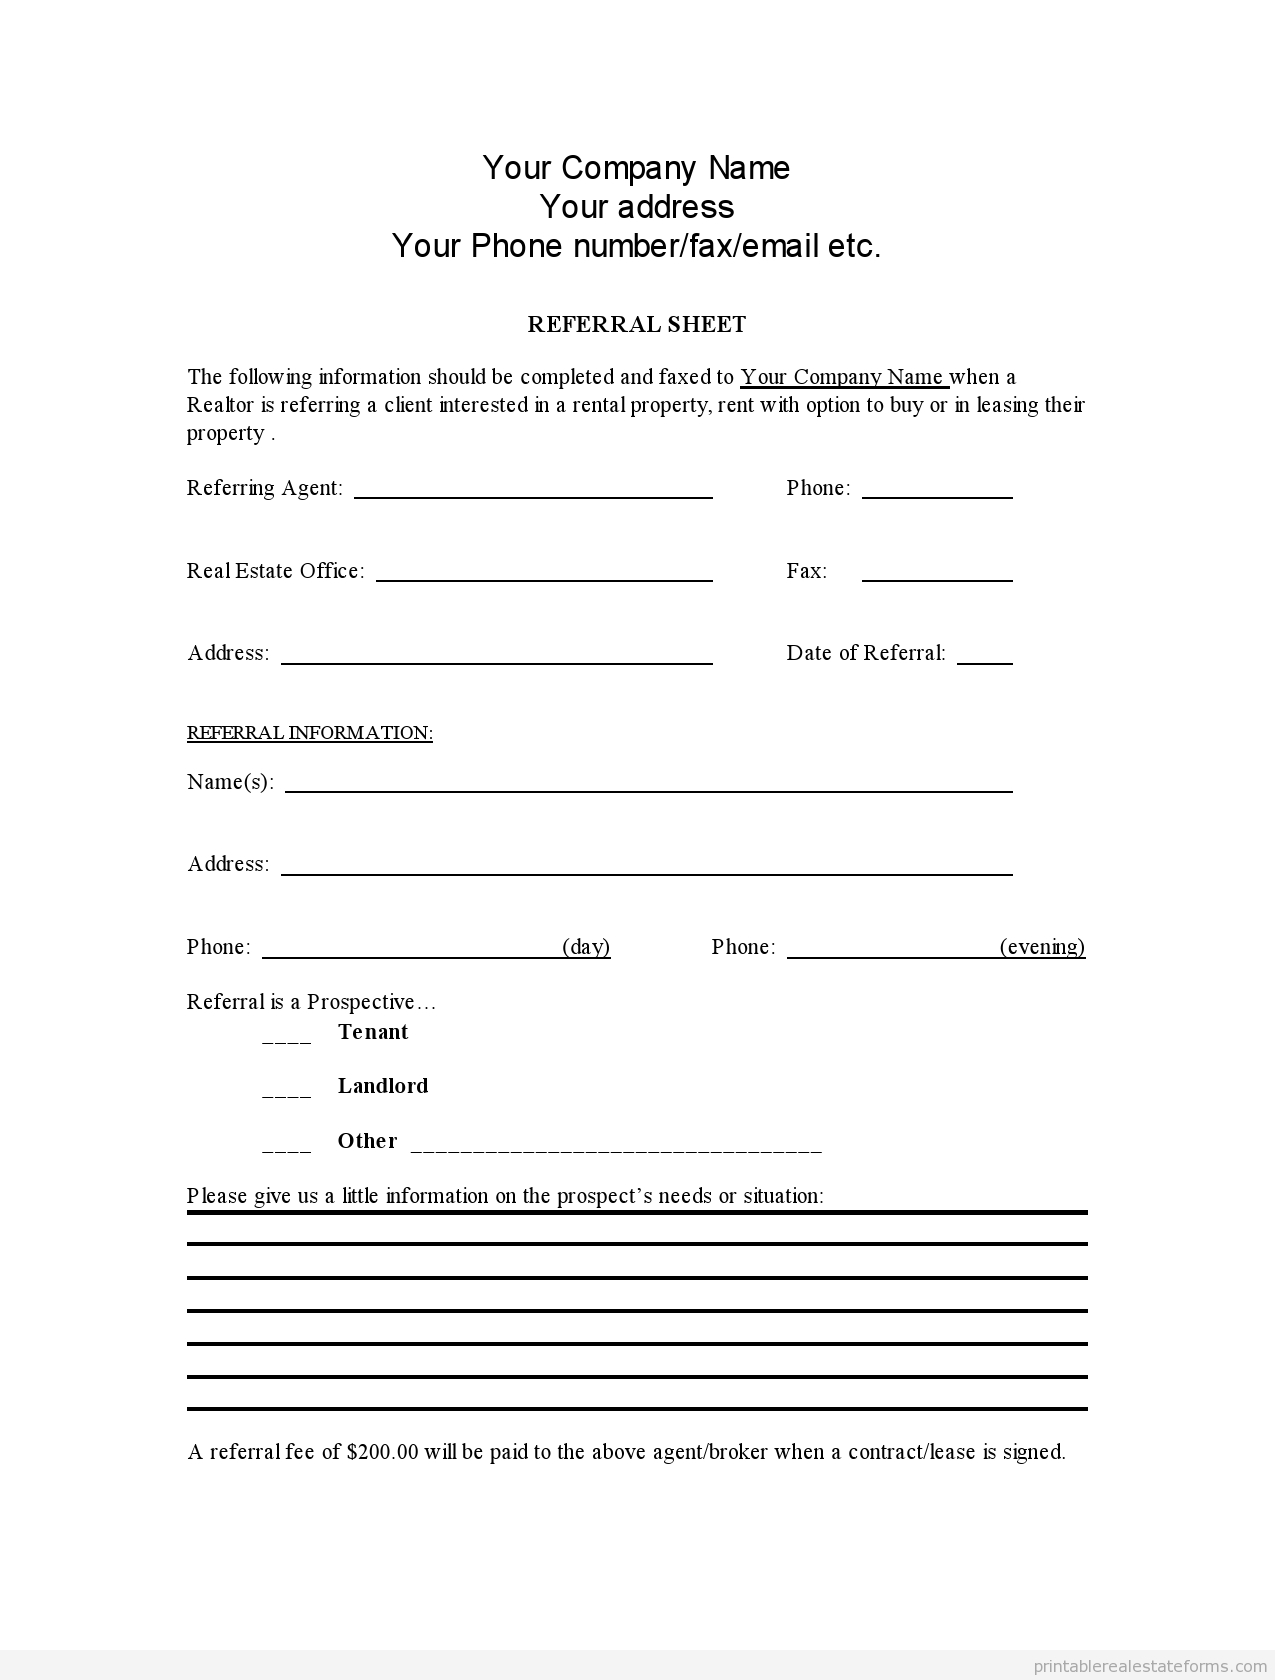 Sample Printable Referral Sheet For Realtors Form  Latest Sample Within Free Referral Fee Agreement Template